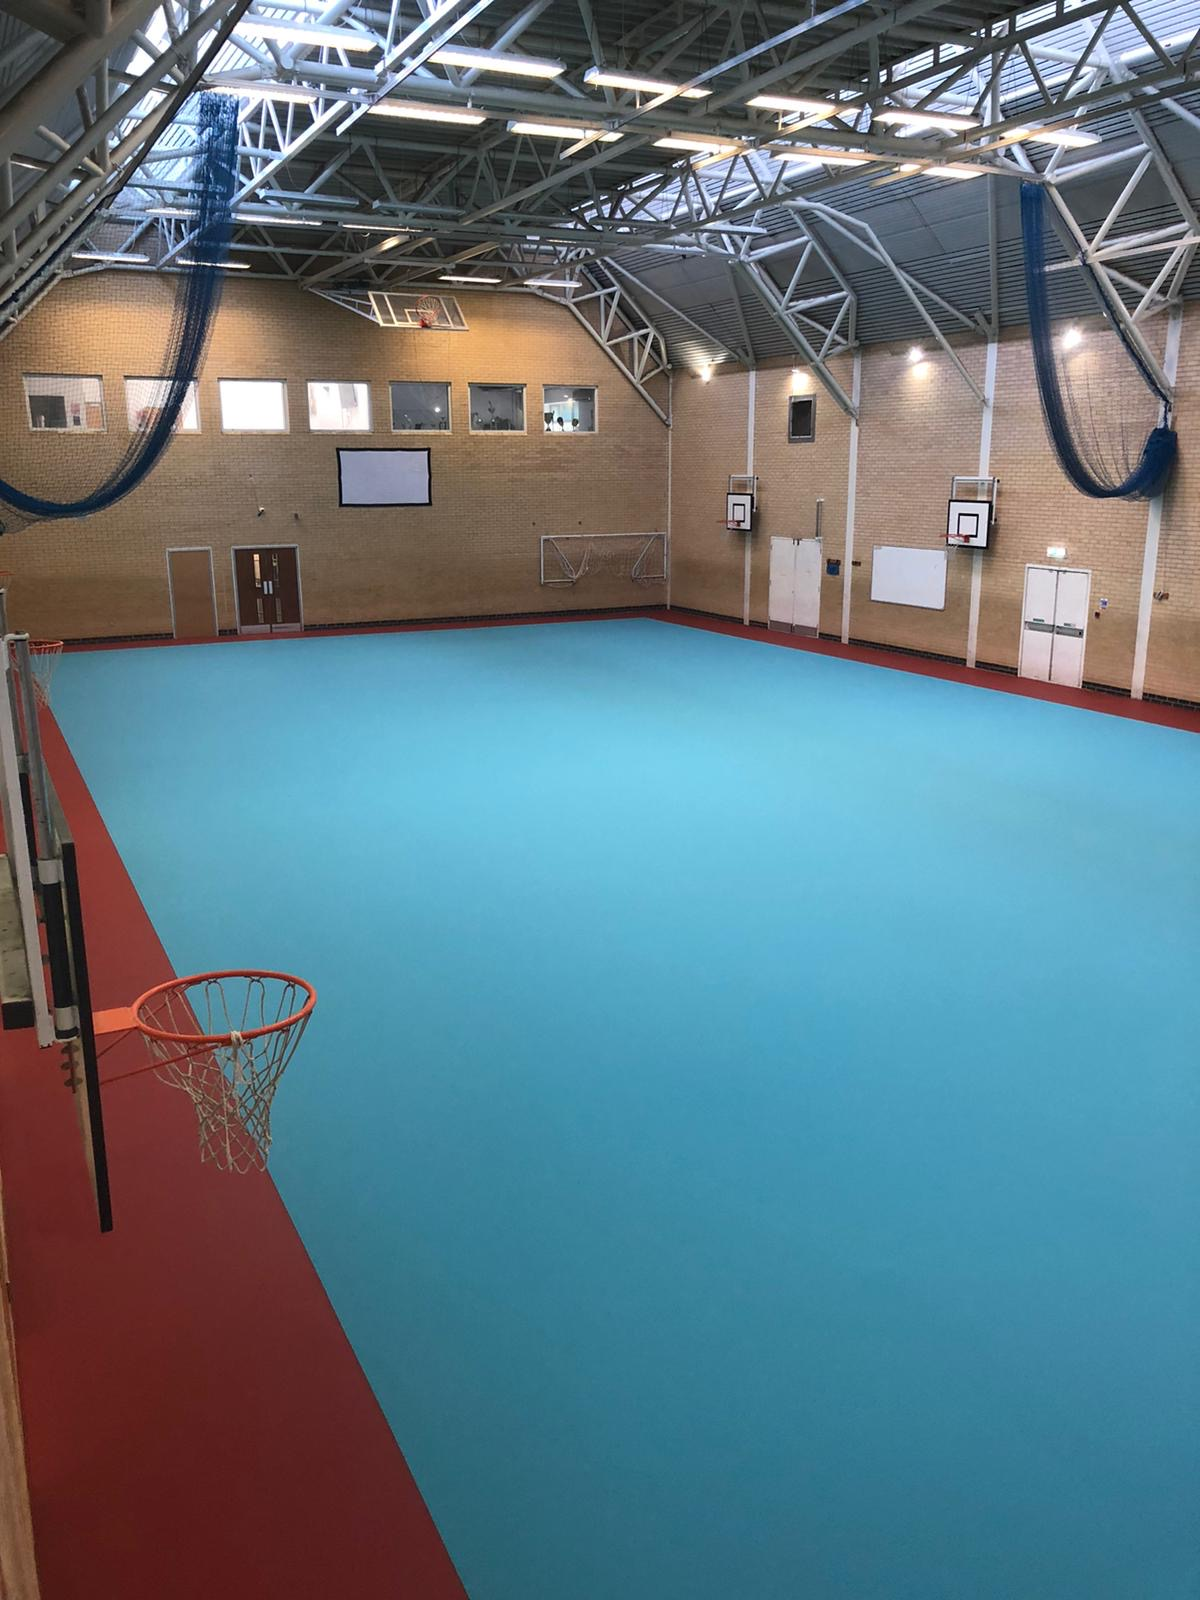 Pulastic indoor sports floor Blue 594 sqm 305 with Red Oxide Perimeter to Netball Court